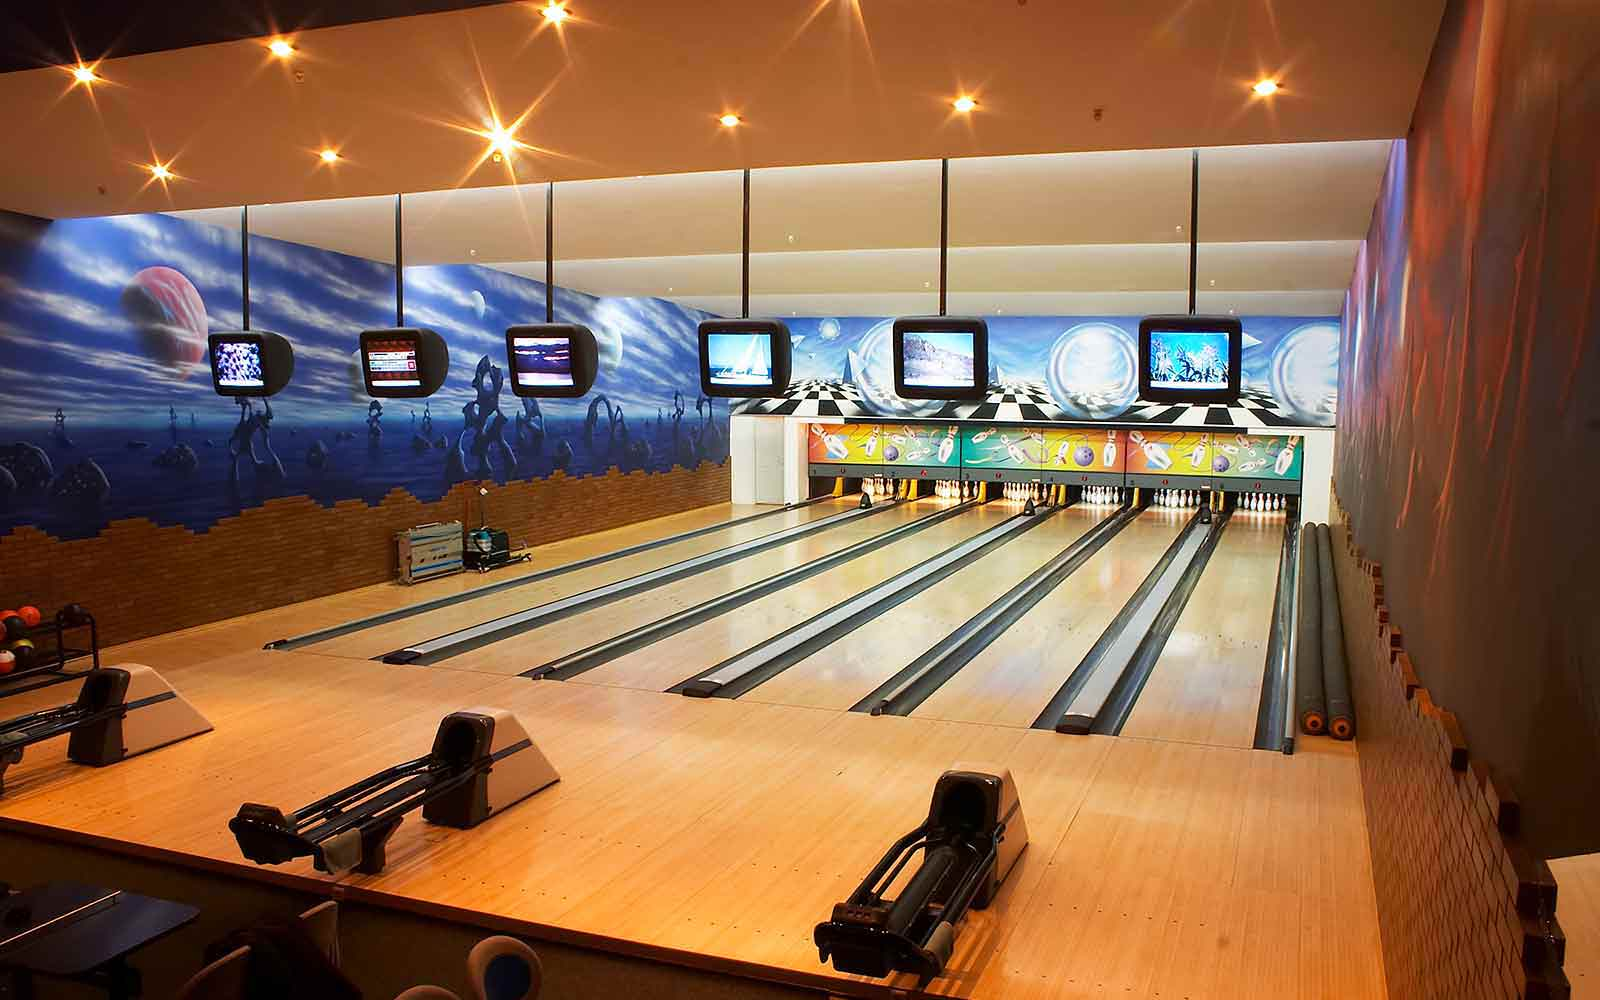 Bowling Alley Equipment Leasing Balboa Capital